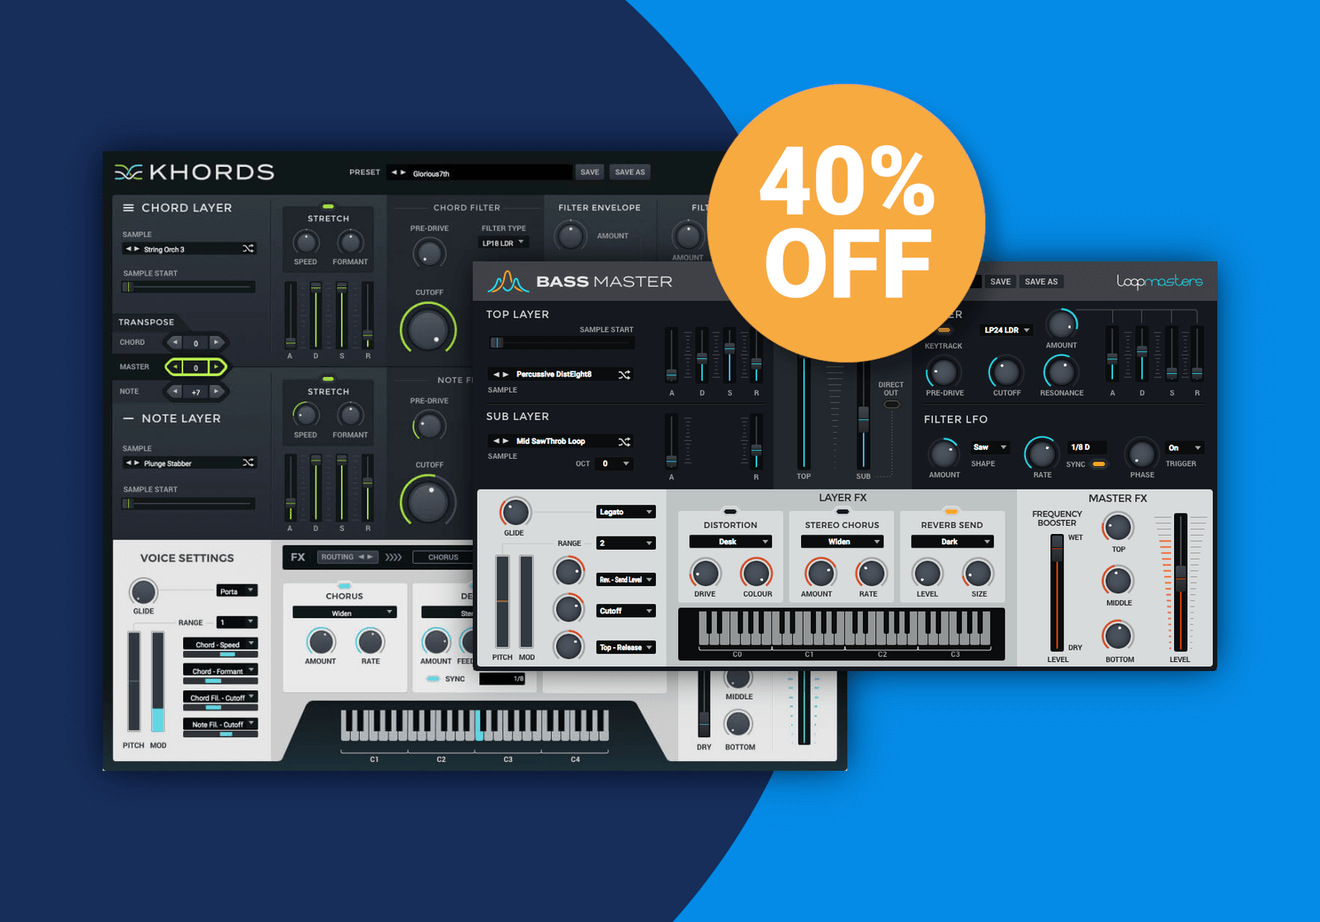 Save 40% on Loopmasters Bass Master, Khords & Expansion Packs